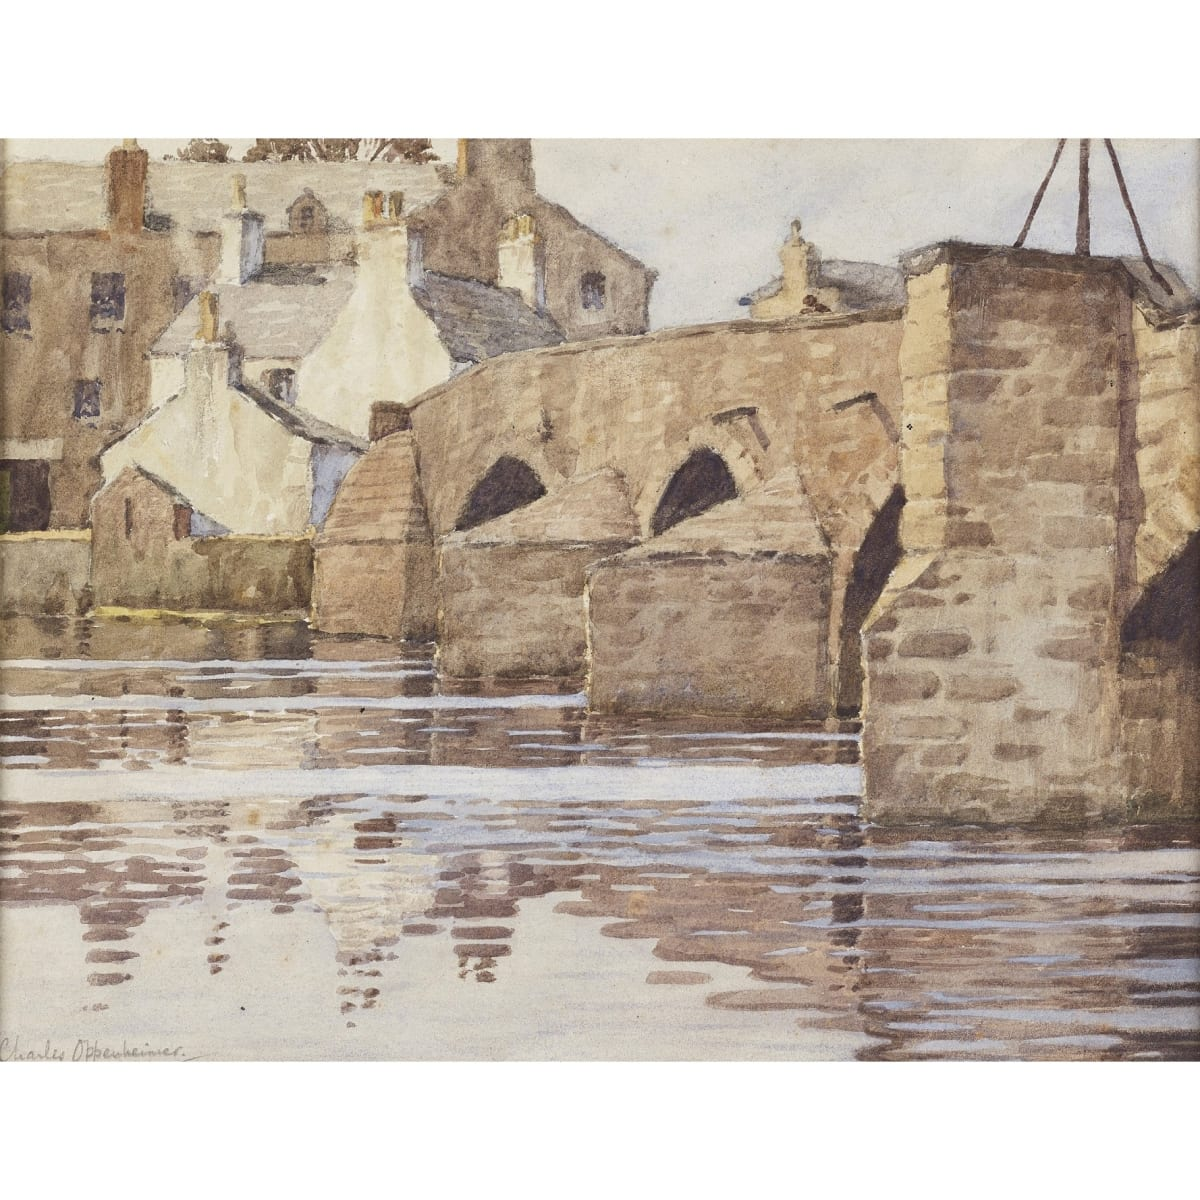 Charles Oppenheimer Devorgilla Bridge or the Old Bridge, Dumfries signed watercolour on paper 8 1/2 x 11 inches